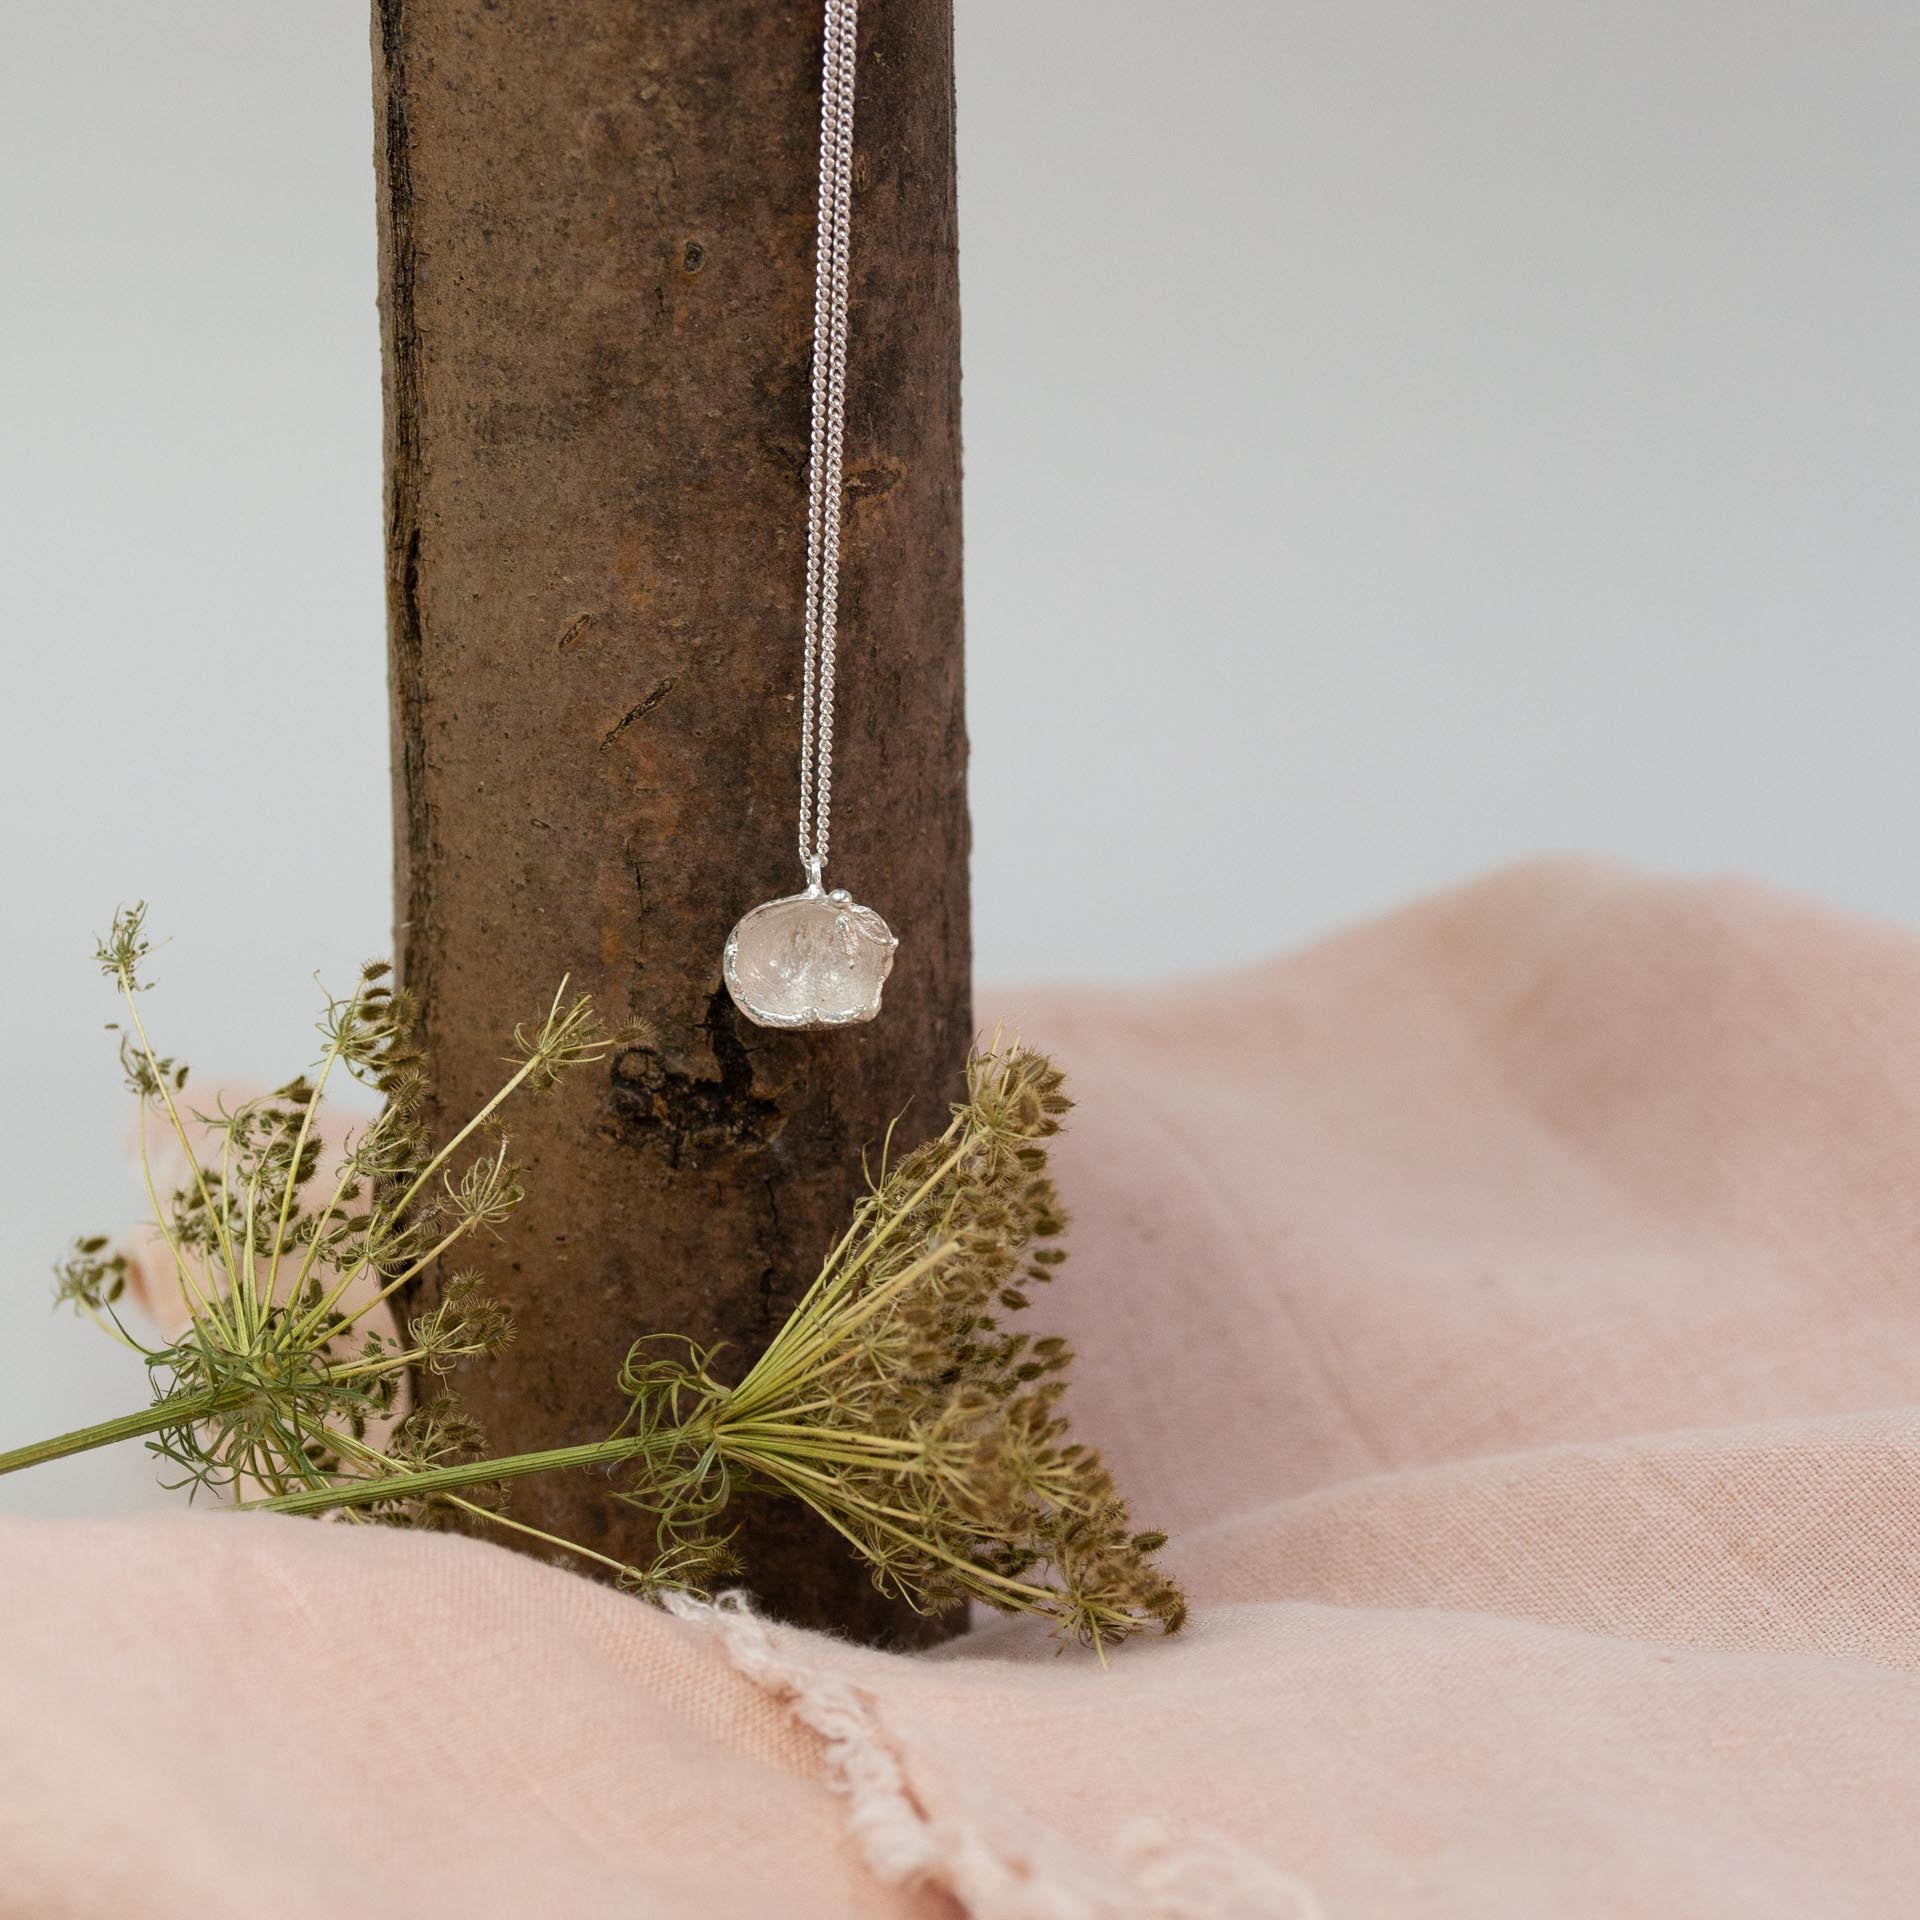 silver hazelnut necklace hanging from branch above dried flowers and pink cloth